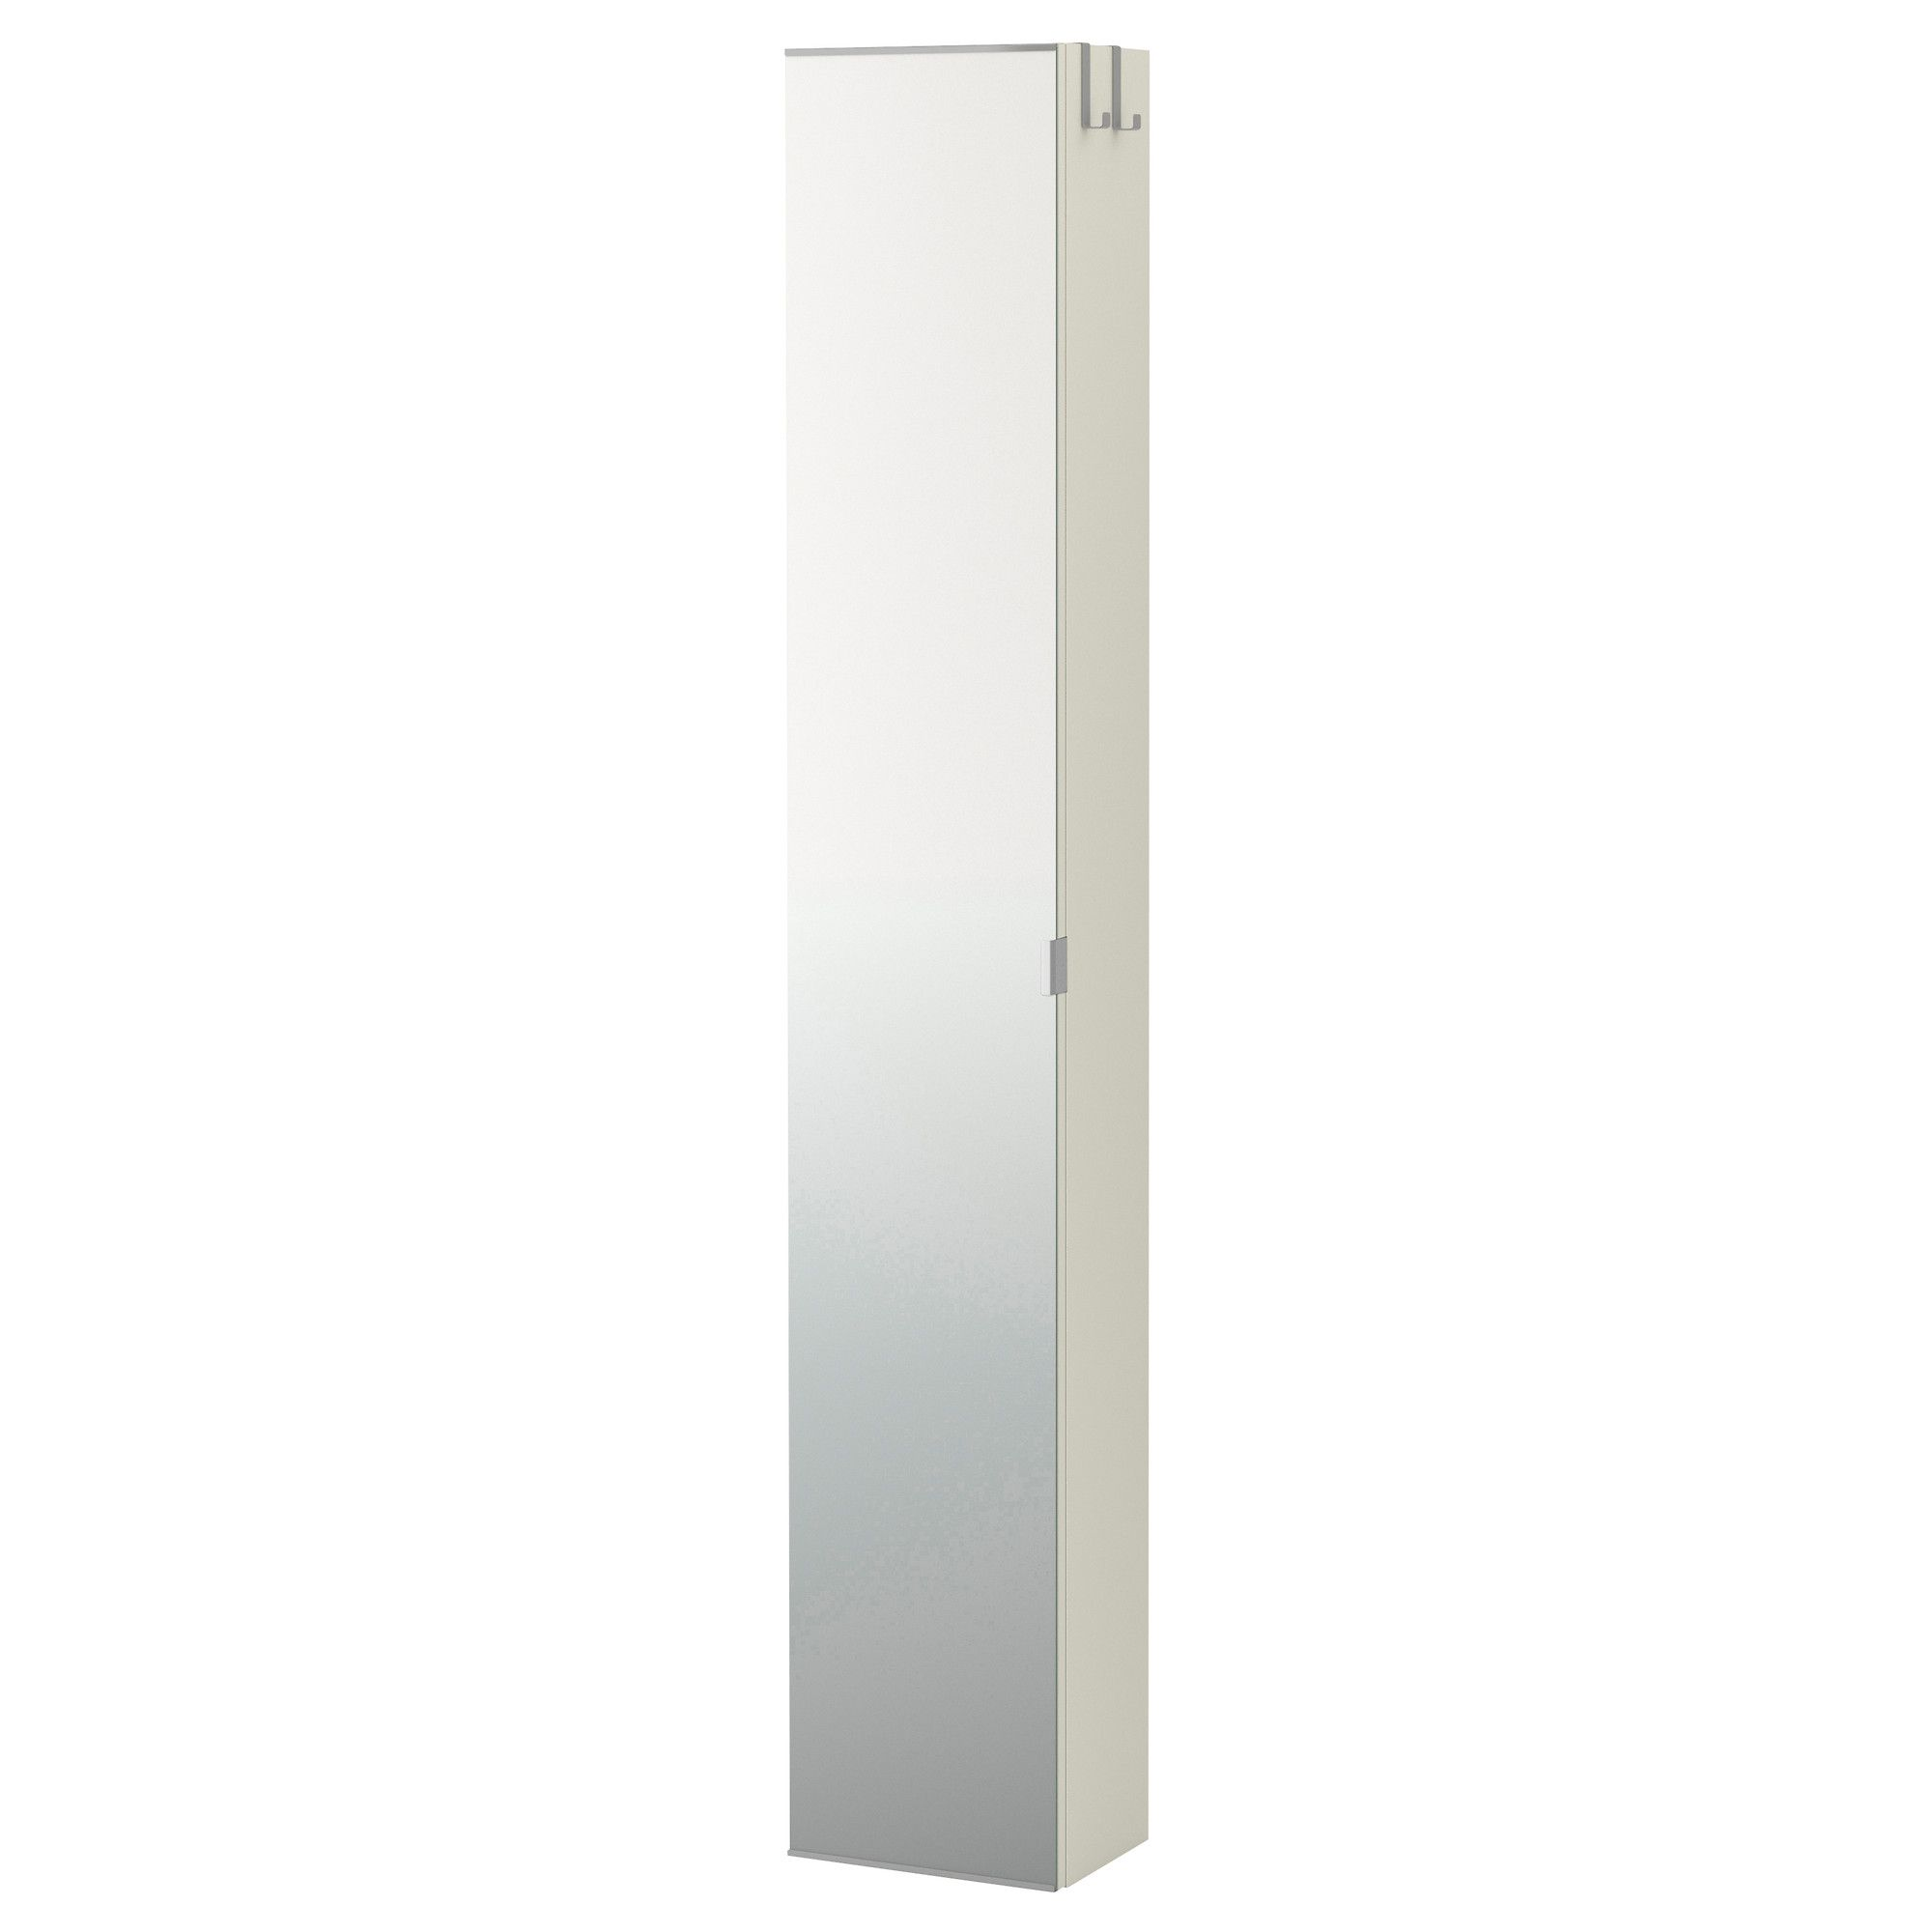 ikea lillngen mirror cabinet white perfect where space is limited since the